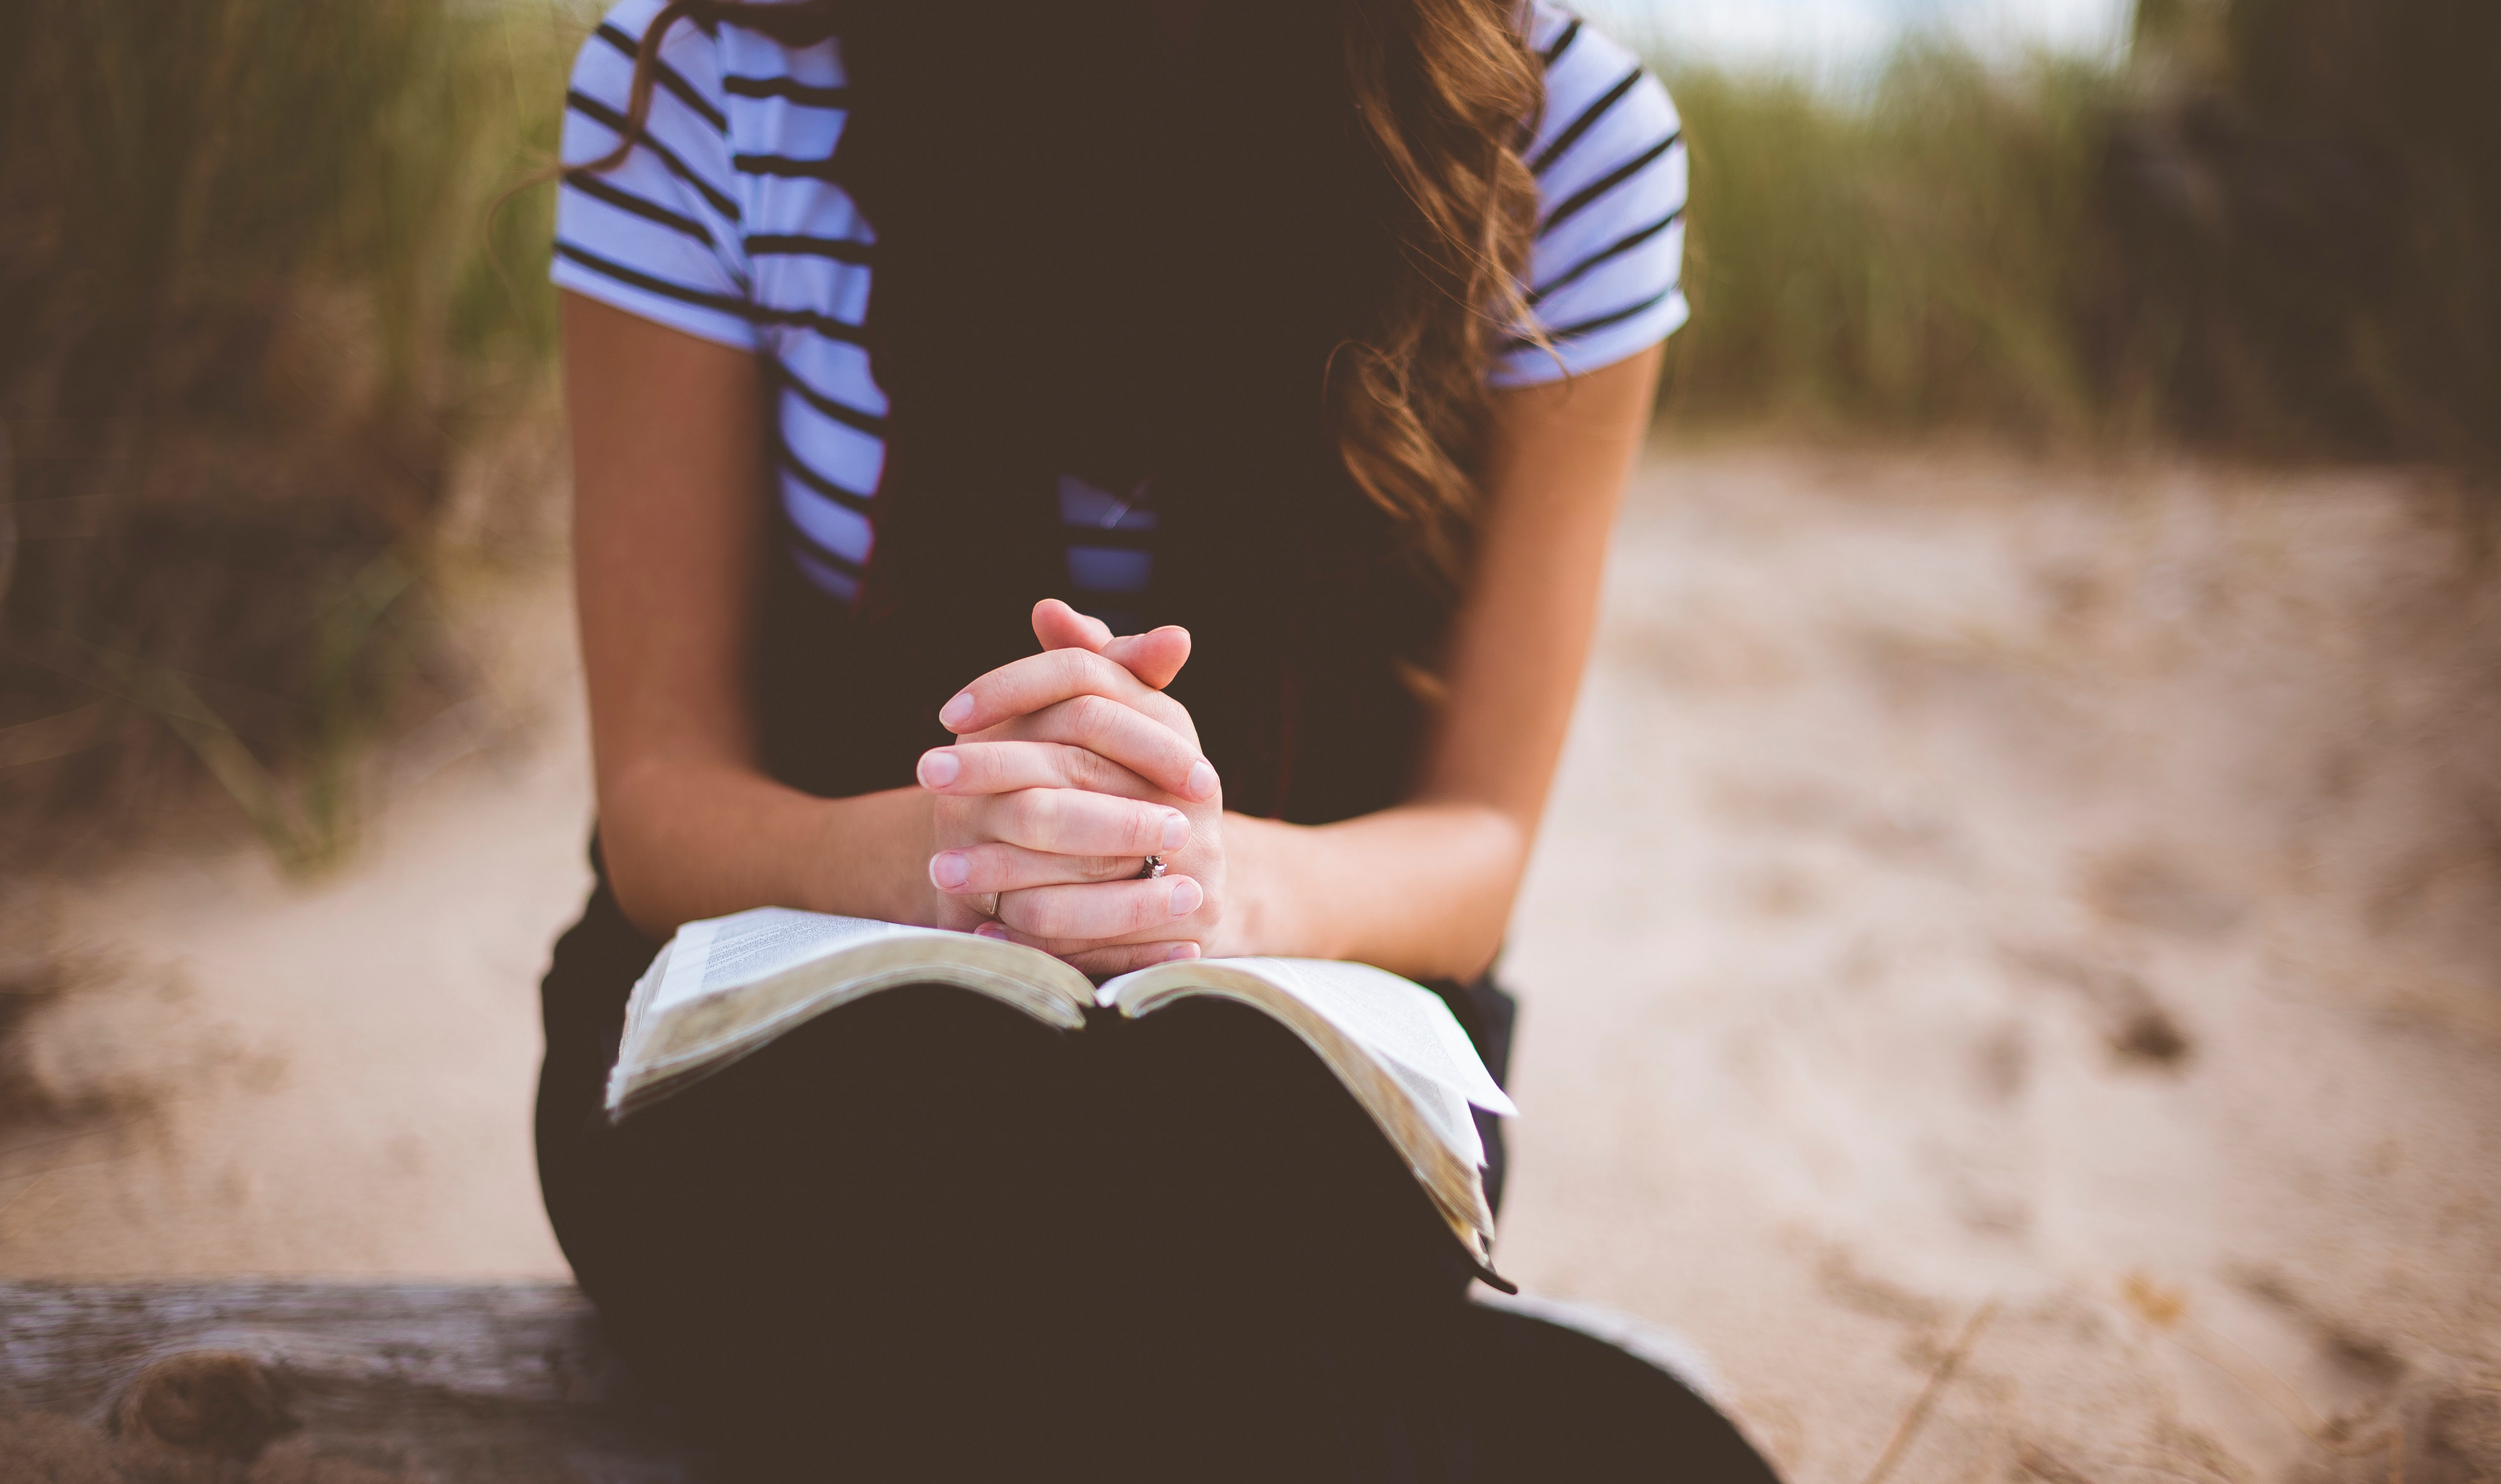 When We Pray To God, This is What Happens - Thrive Global - Medium